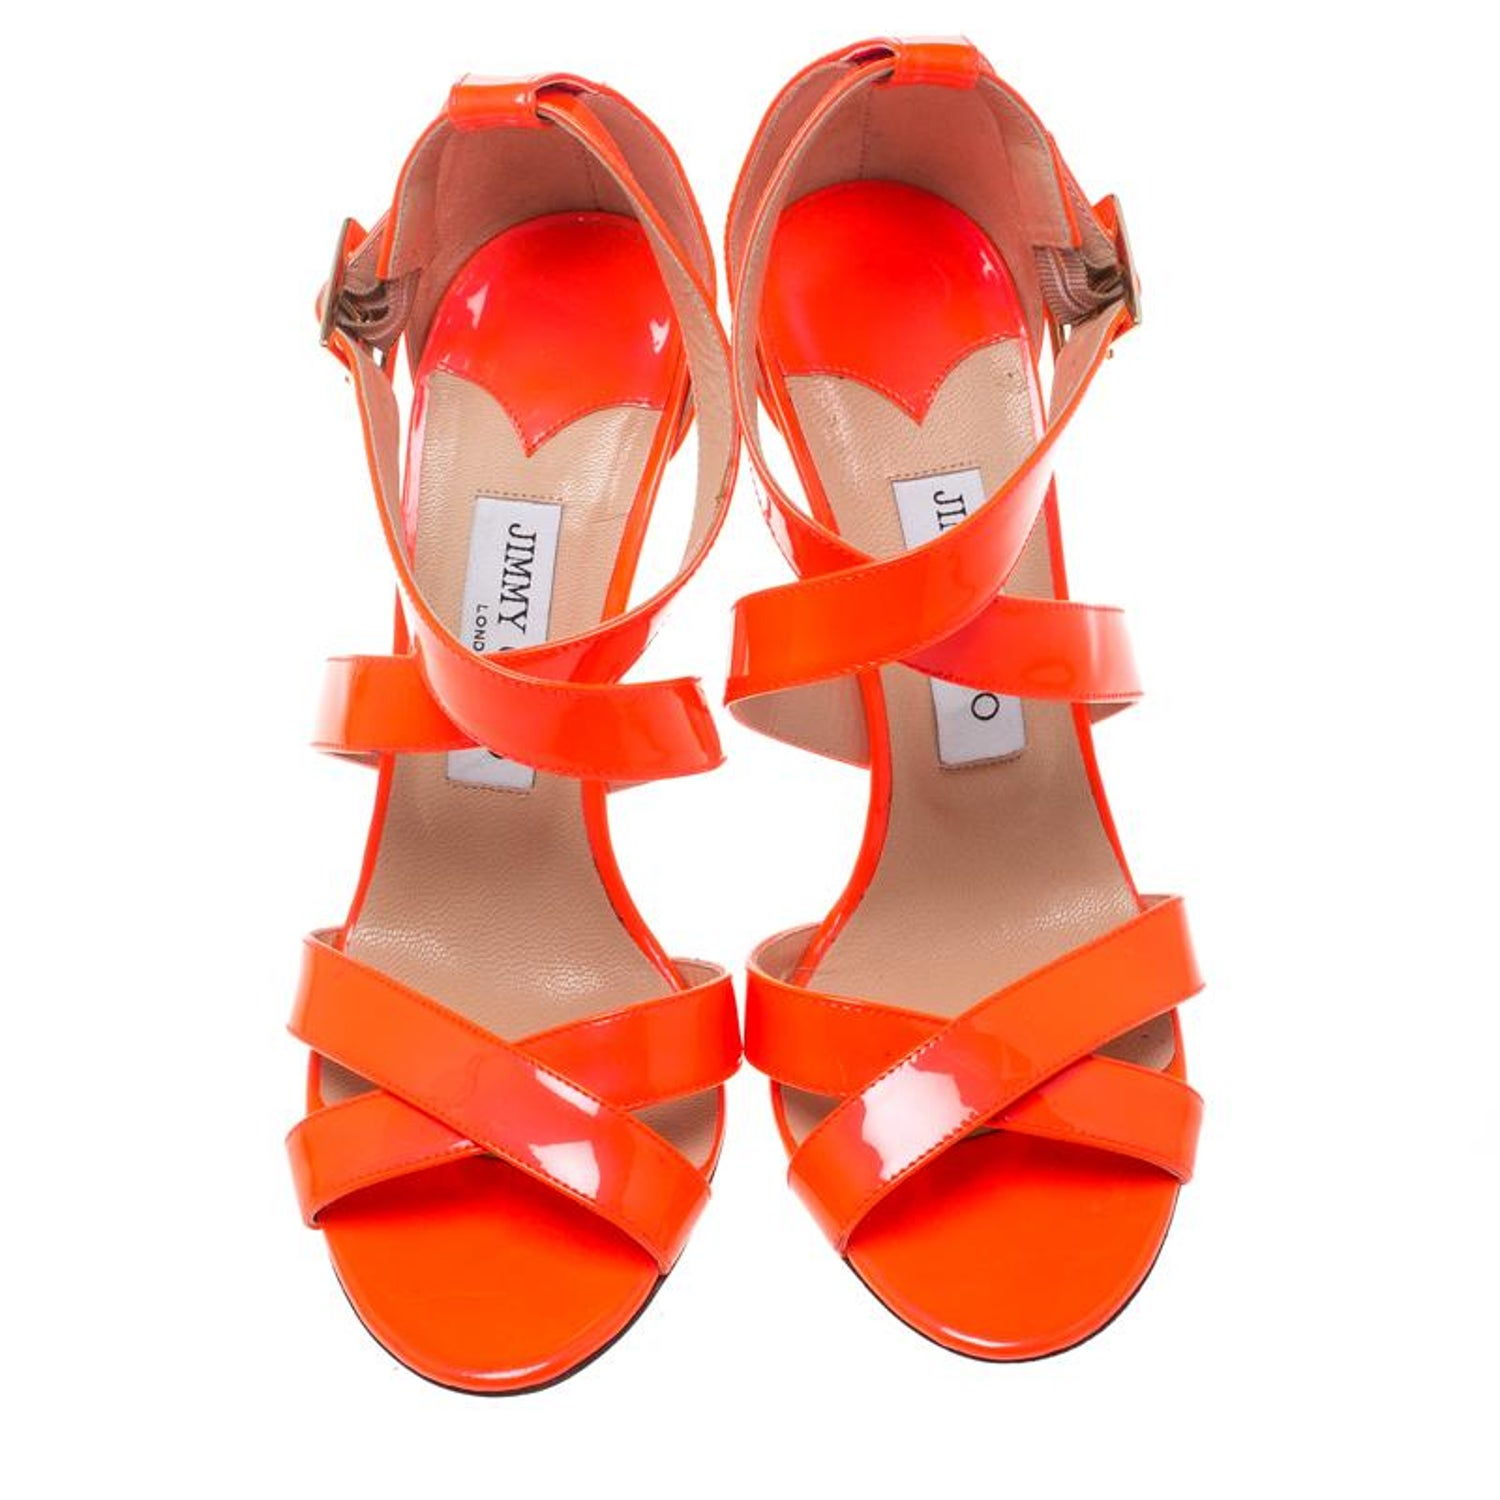 55b0d16145b Jimmy Choo Fluorescent Orange Patent Leather Louise Cross Strap Sandals  Size 39. For Sale at 1stdibs